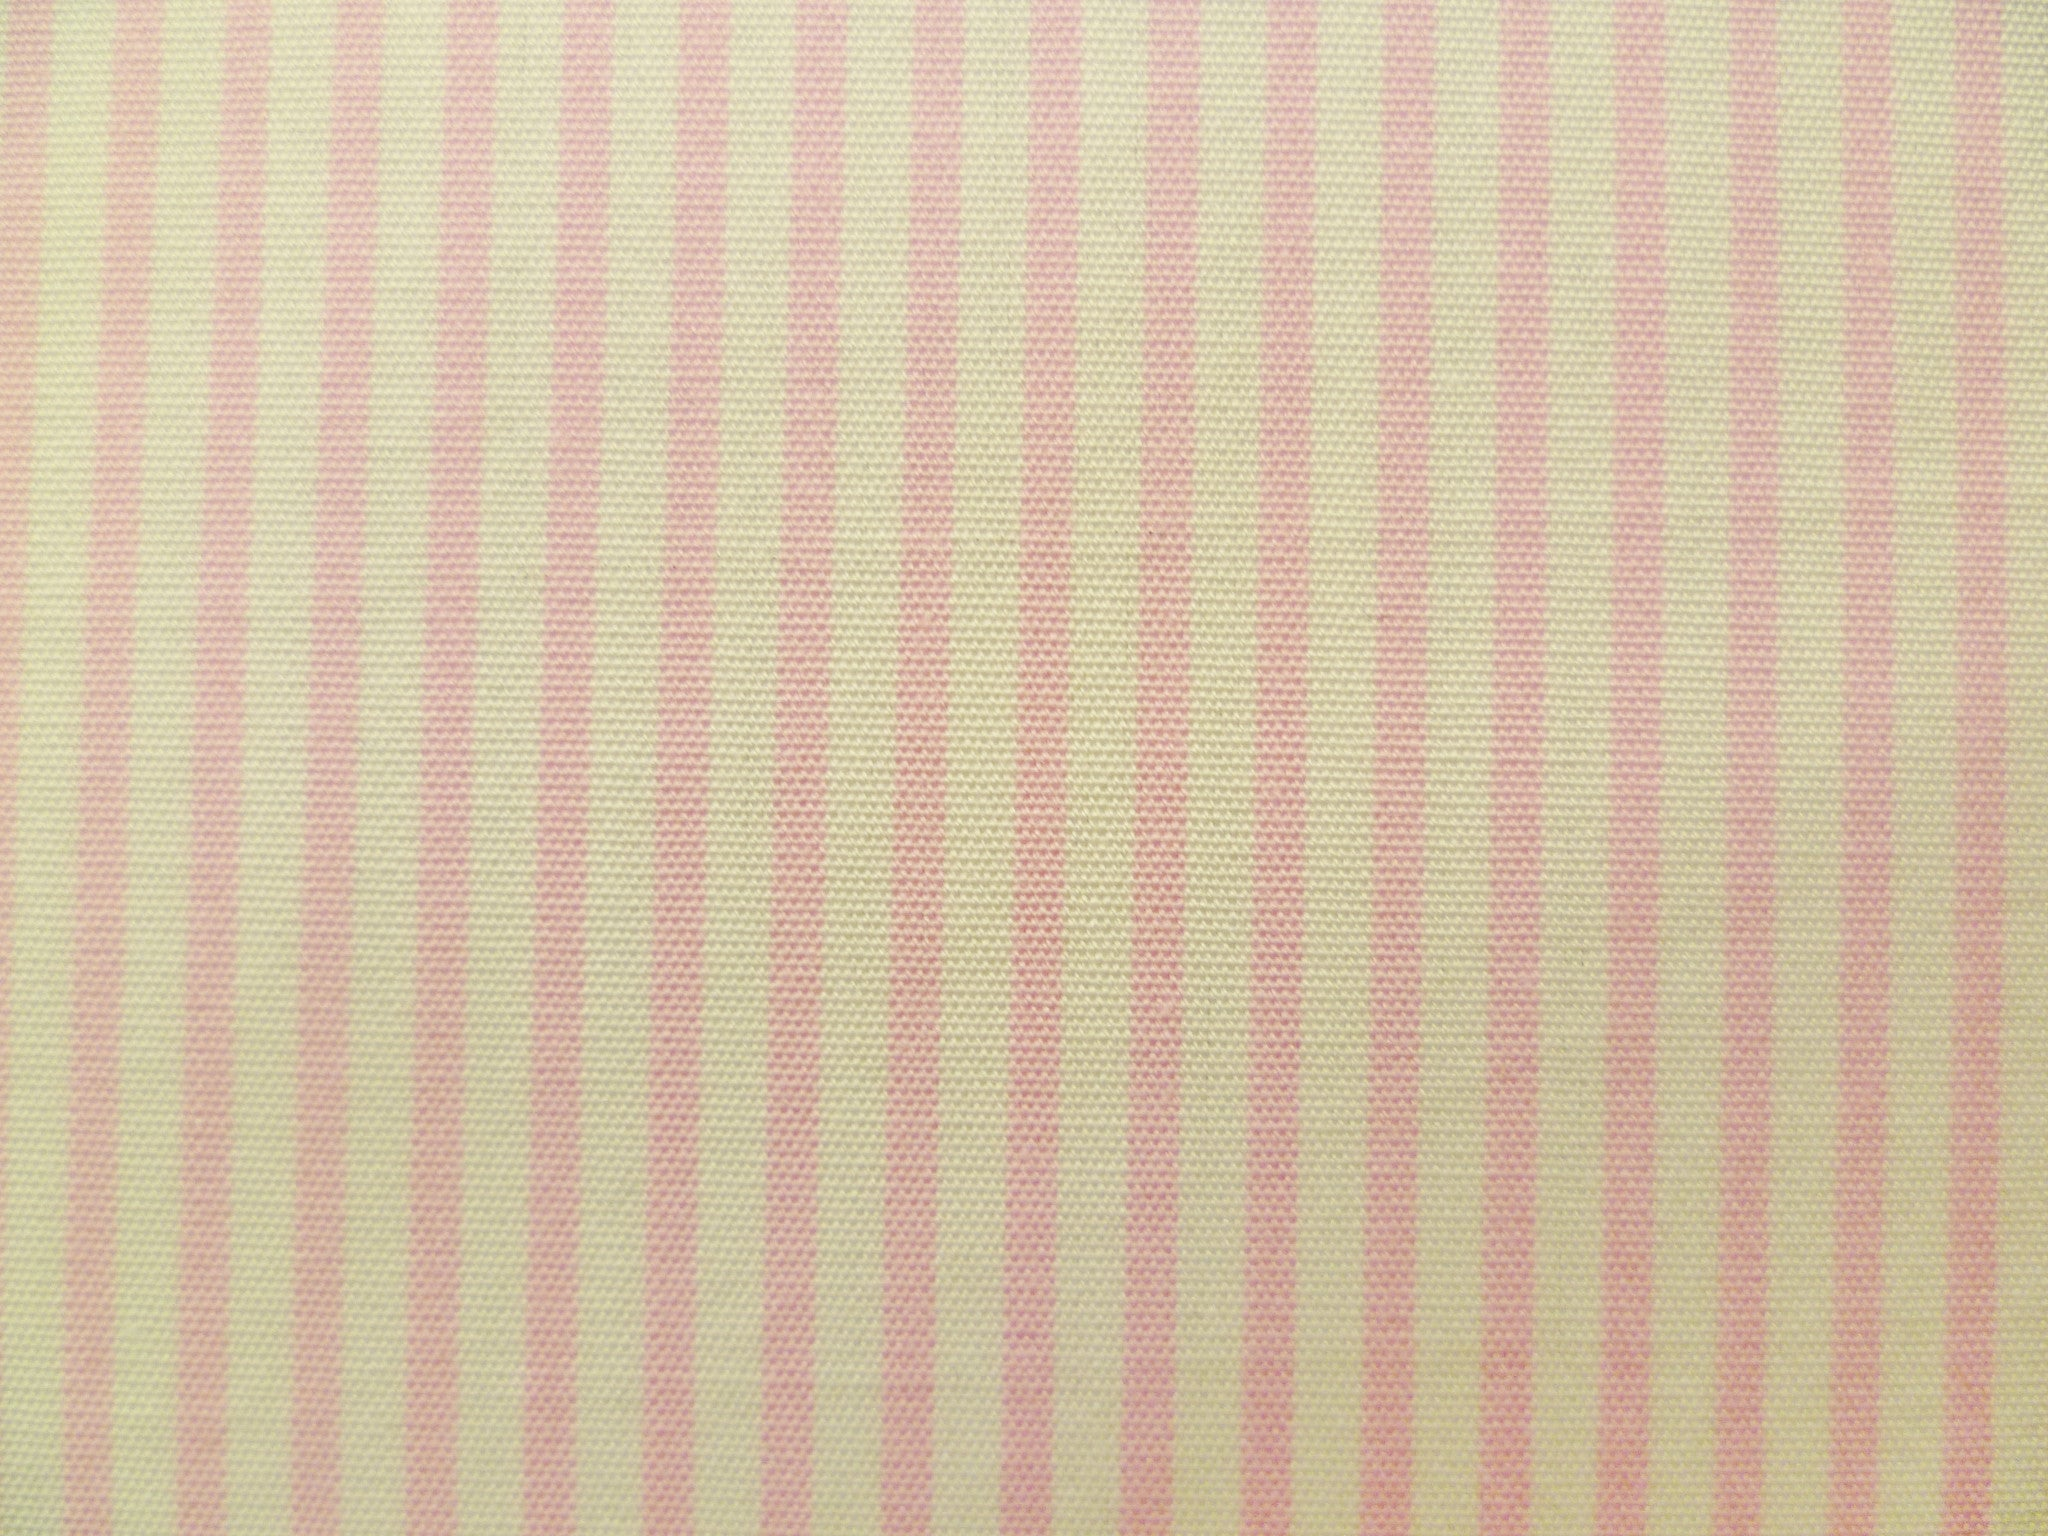 Soft Pink and White Striped Cotton